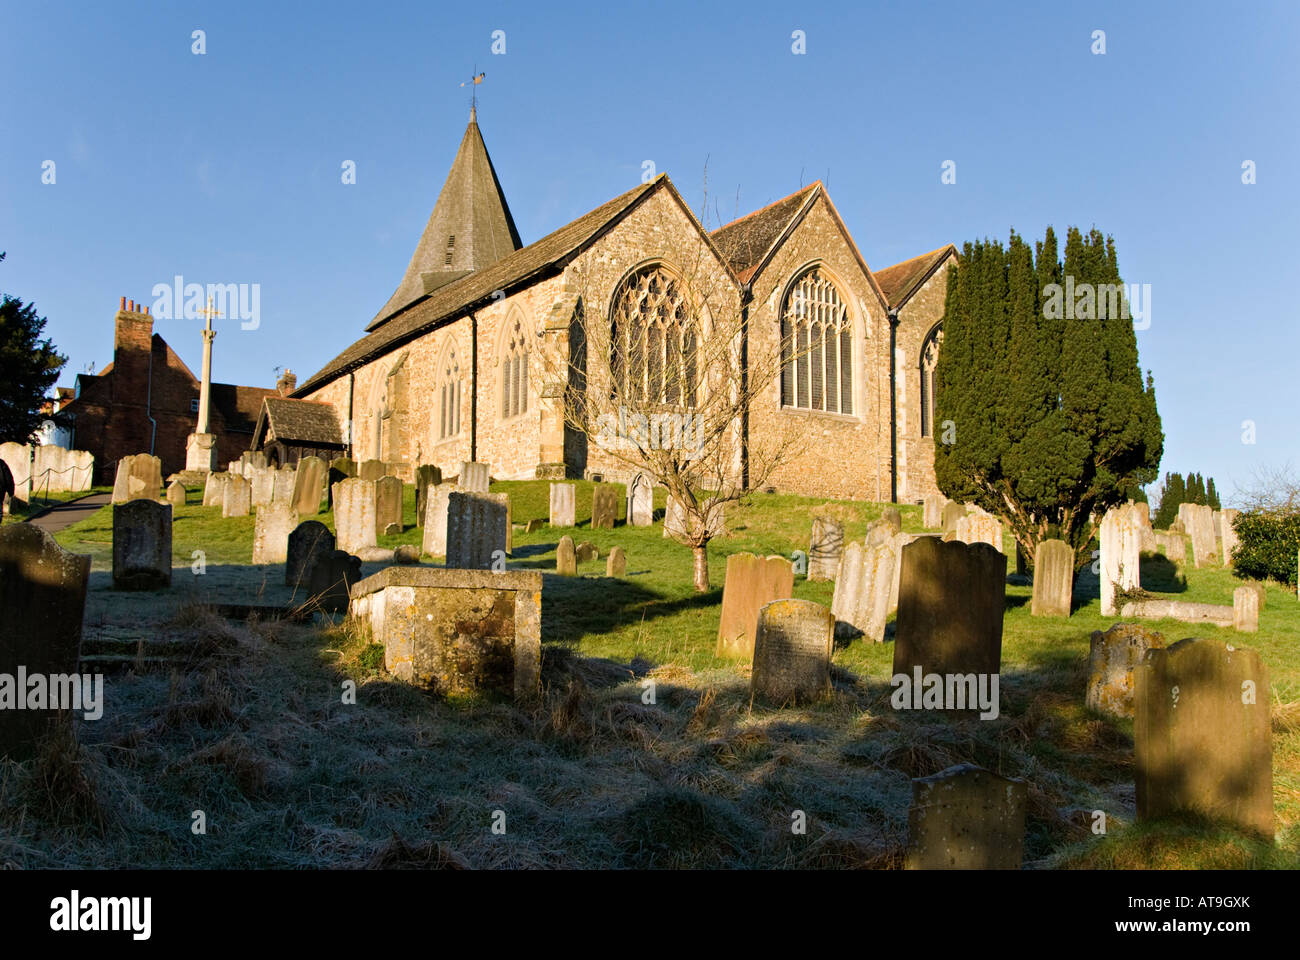 Early Morning View of St. Mary's Church, Westerham, Kent, England. - Stock Image